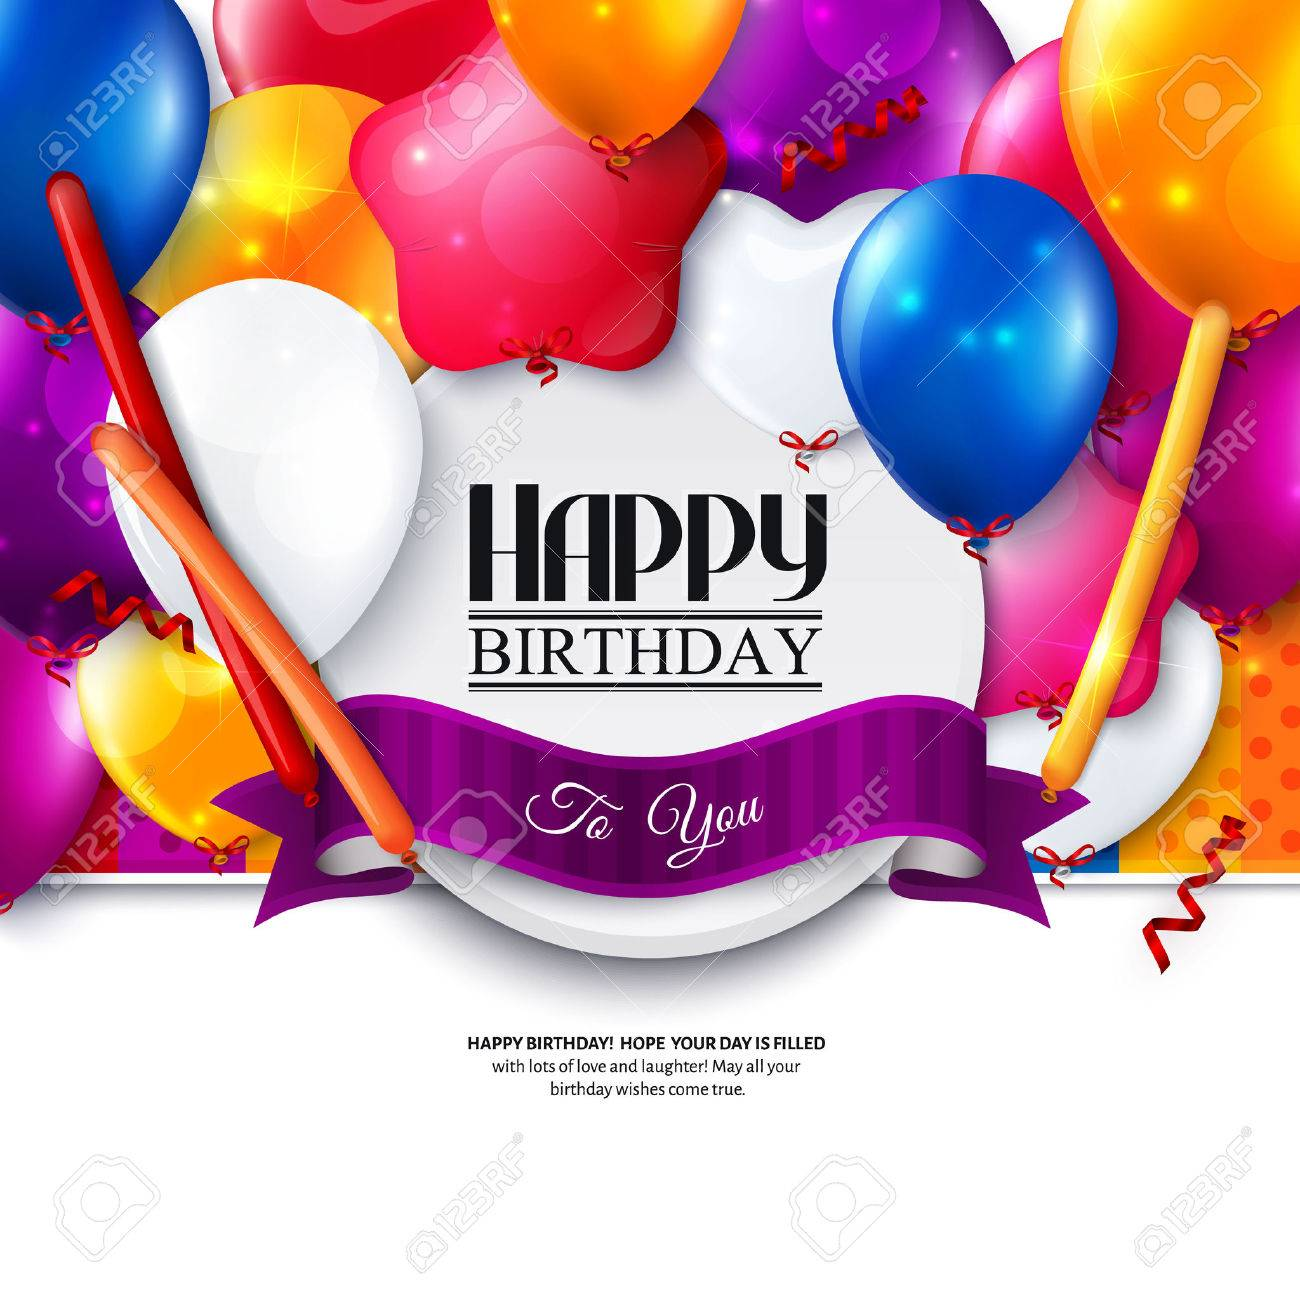 Birthday card with colorful balloons and confetti. - 35093162